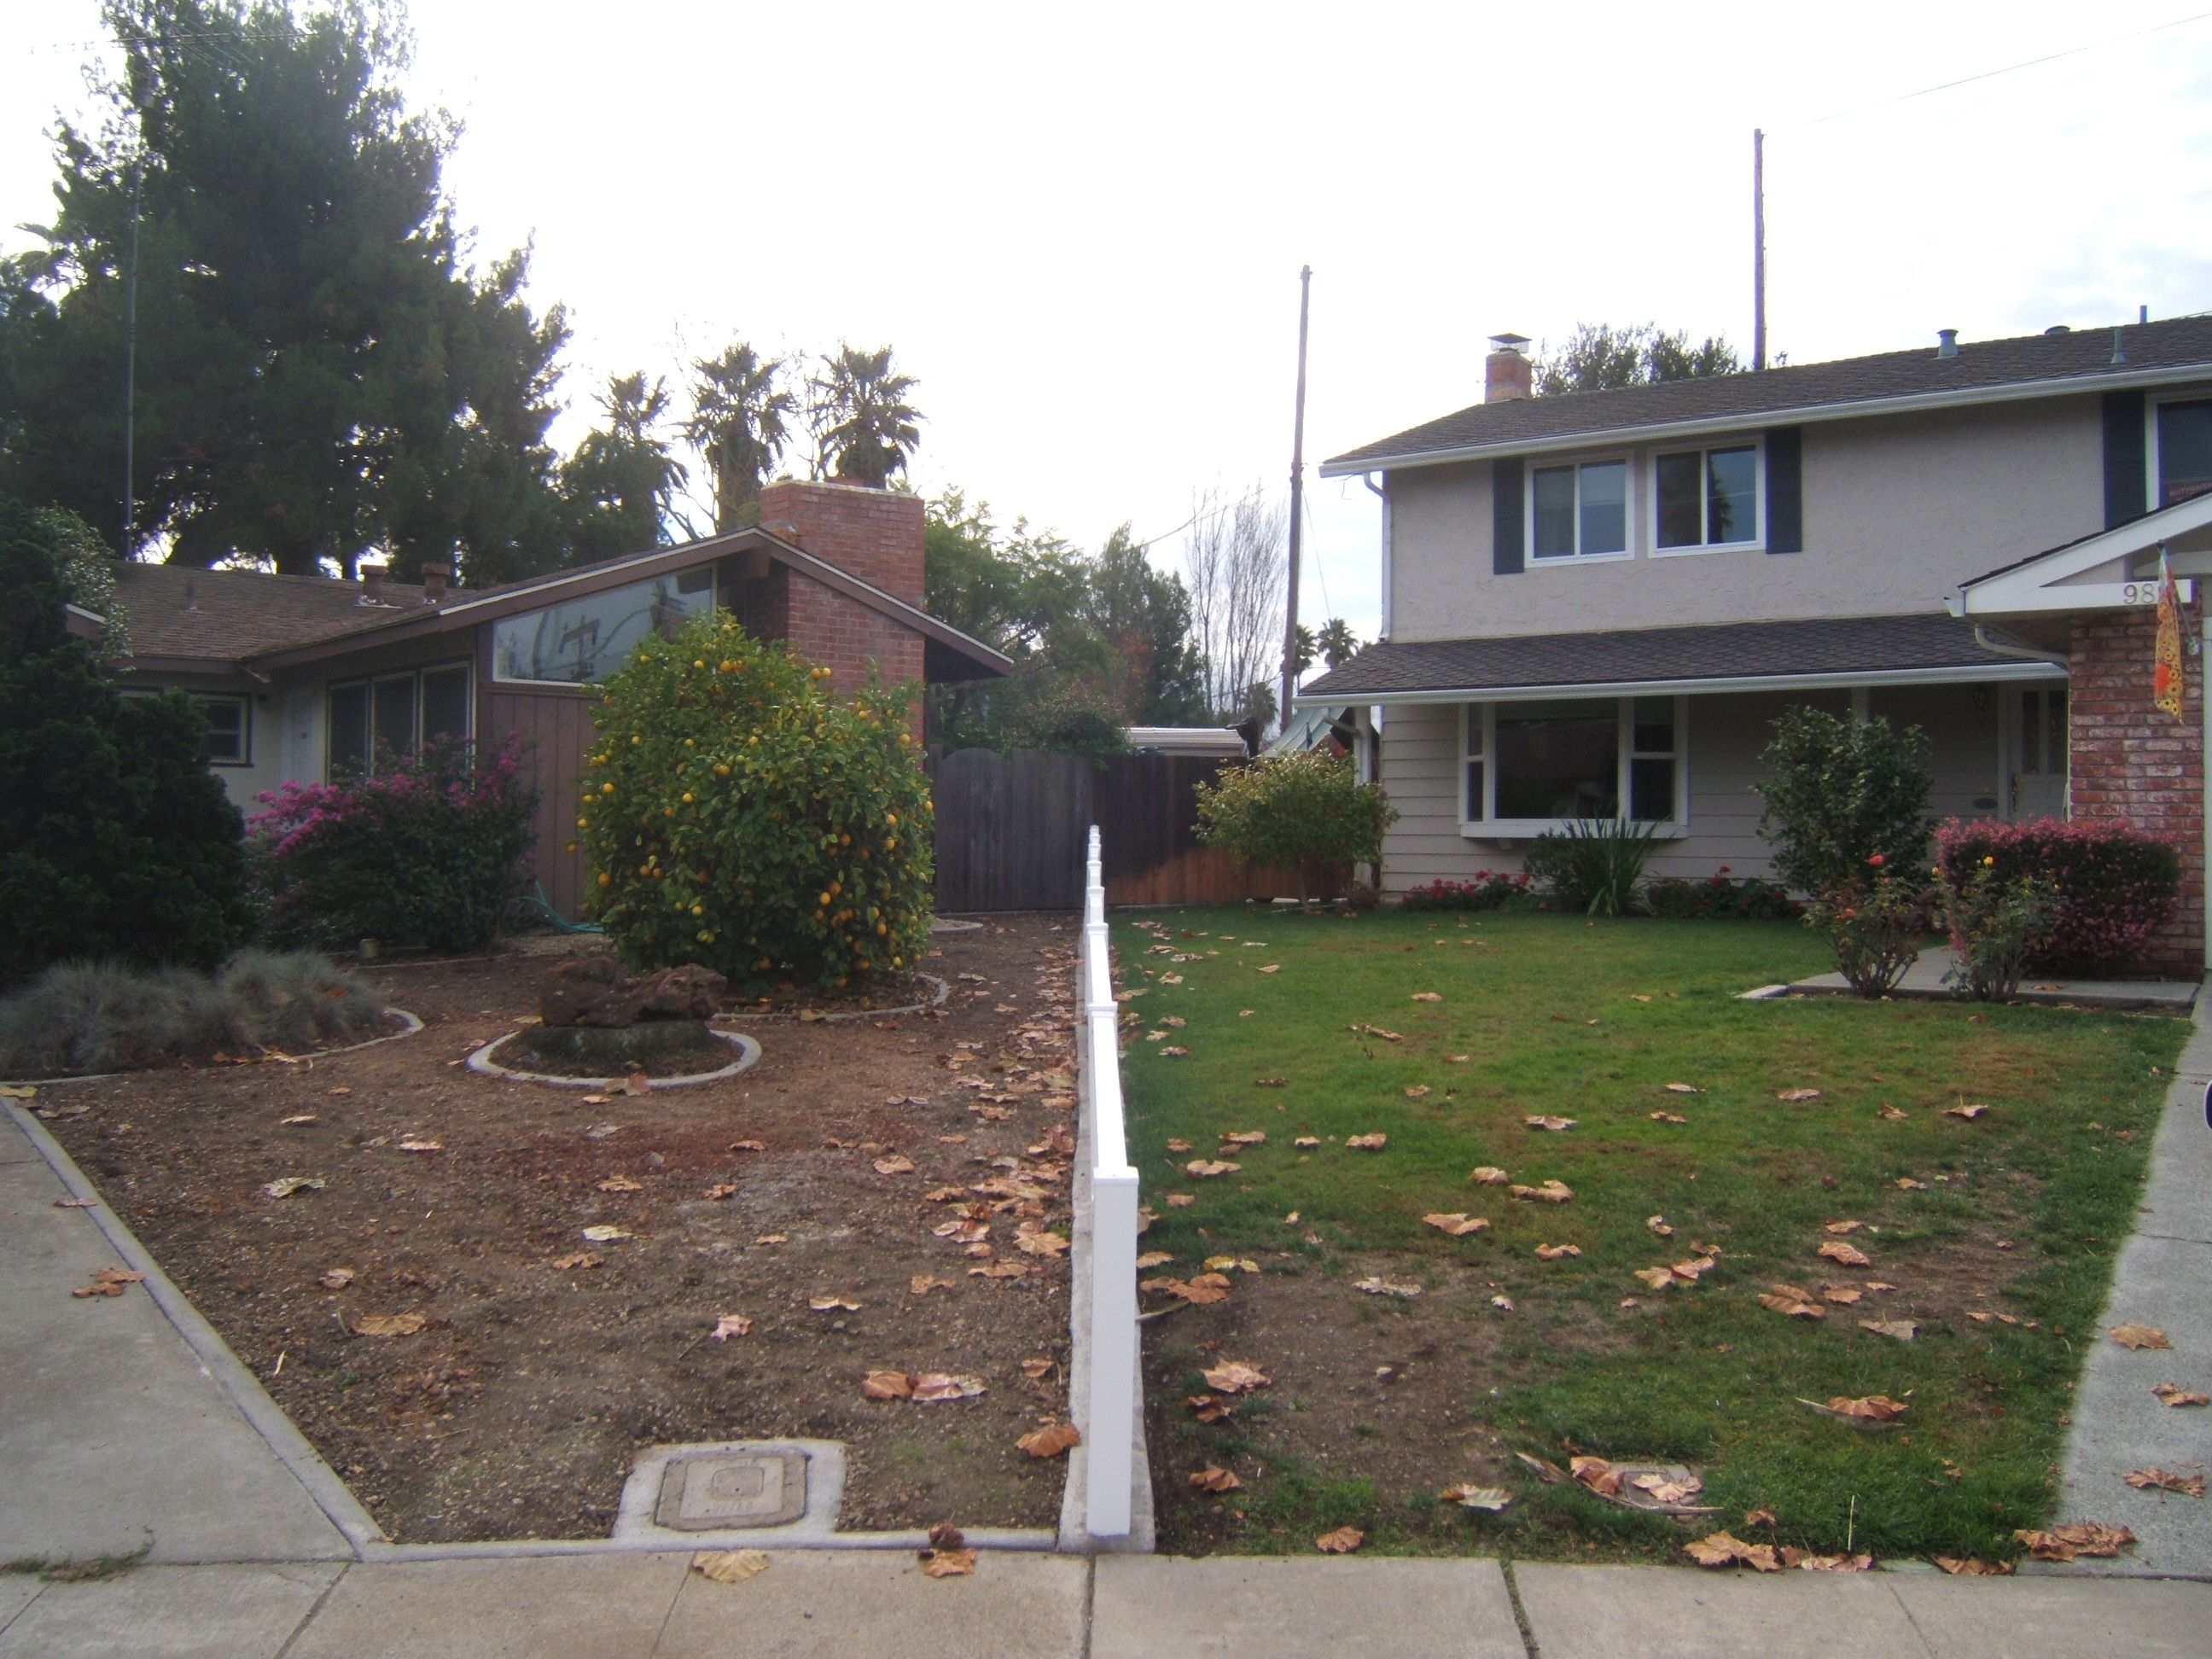 Take About Lawn Envy We Think The Neighbors Could Use An Easyturf Yard Too What Do You T Installing Synthetic Grass Artificial Grass Garden Turf Installation